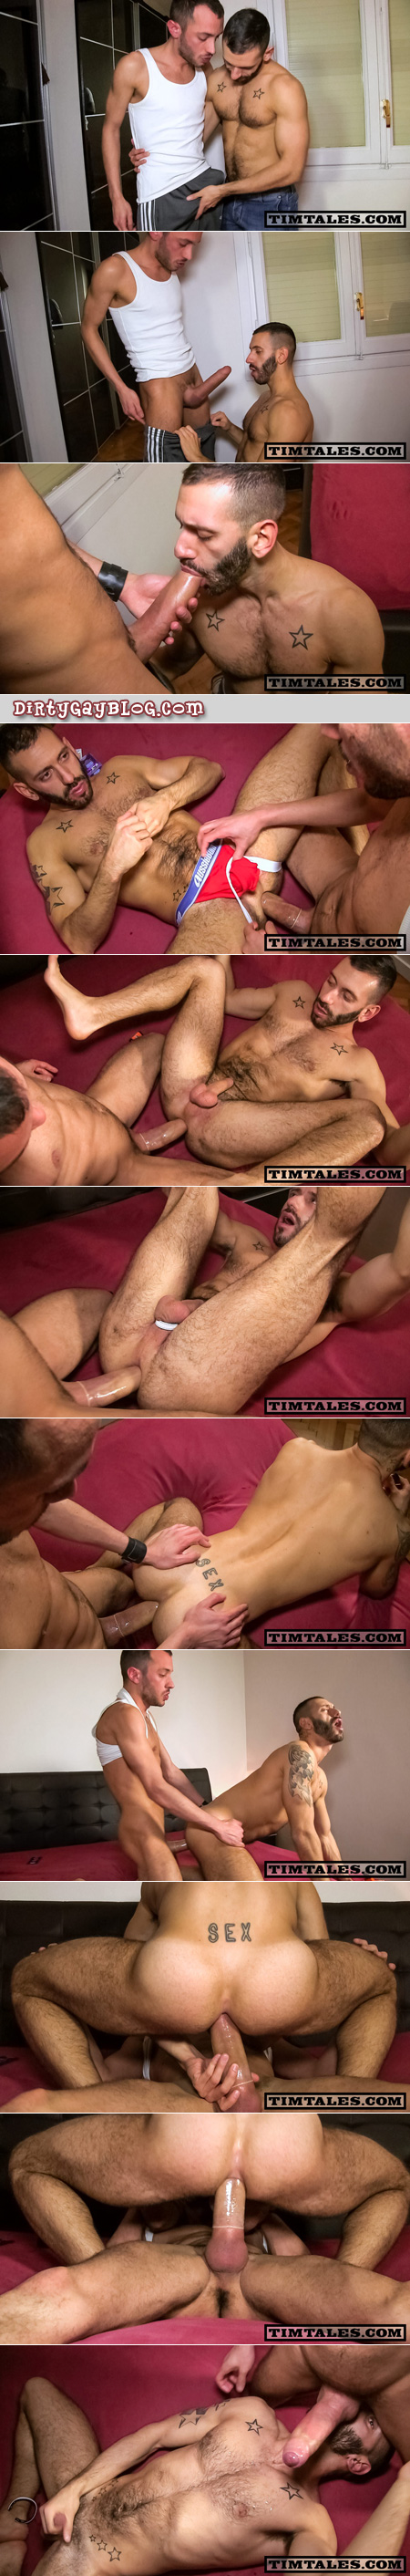 Short, ripped, hairy Italian loves being fucked with gigantic uncut cocks.